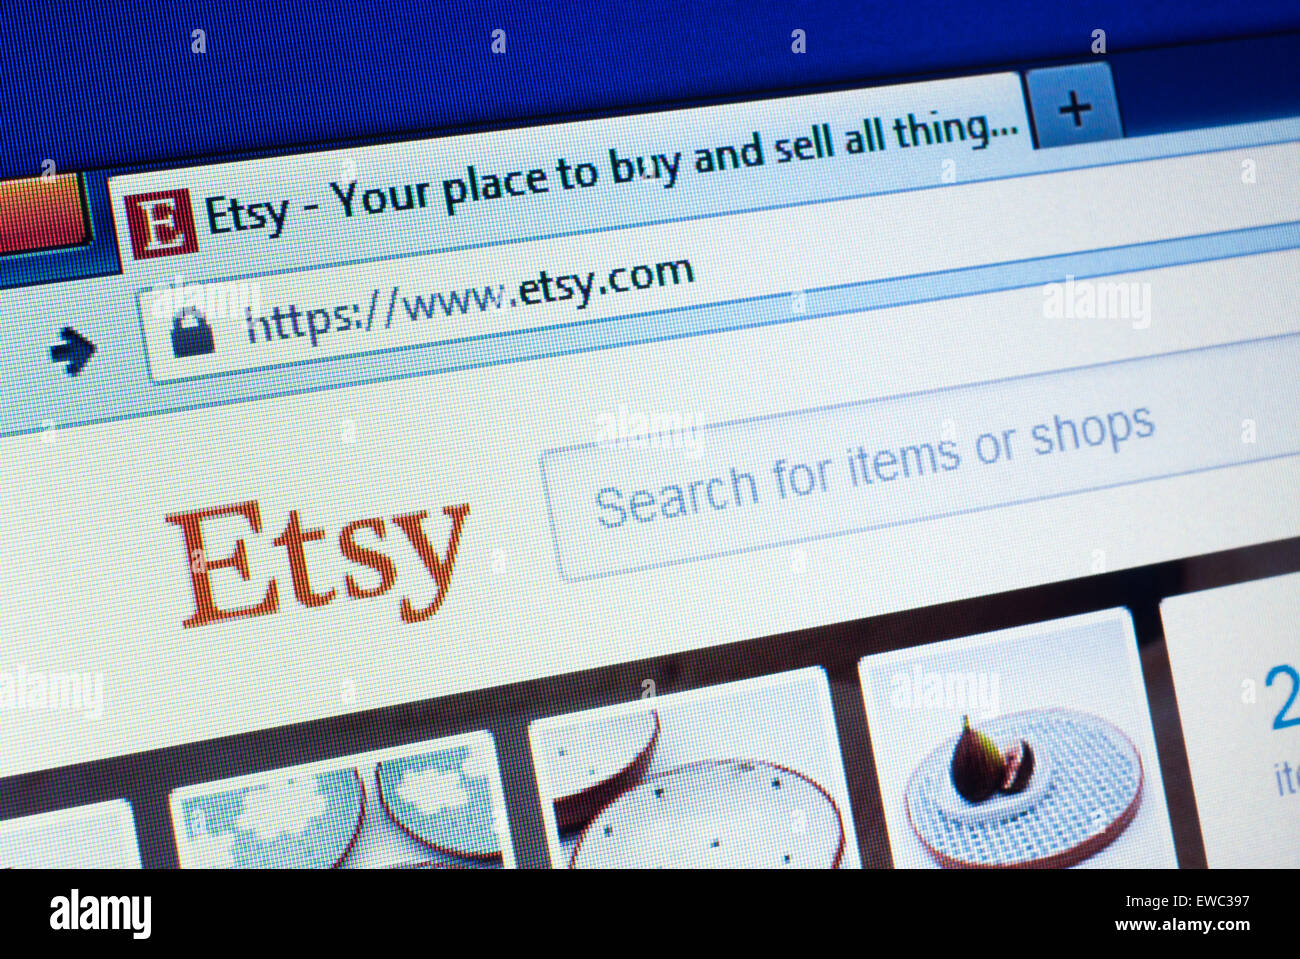 GDANSK, POLAND - APRIL 25, 2015. Etsy homepage on the computer screen. Etsy is a peer-to-peer e-commerce website. - Stock Image